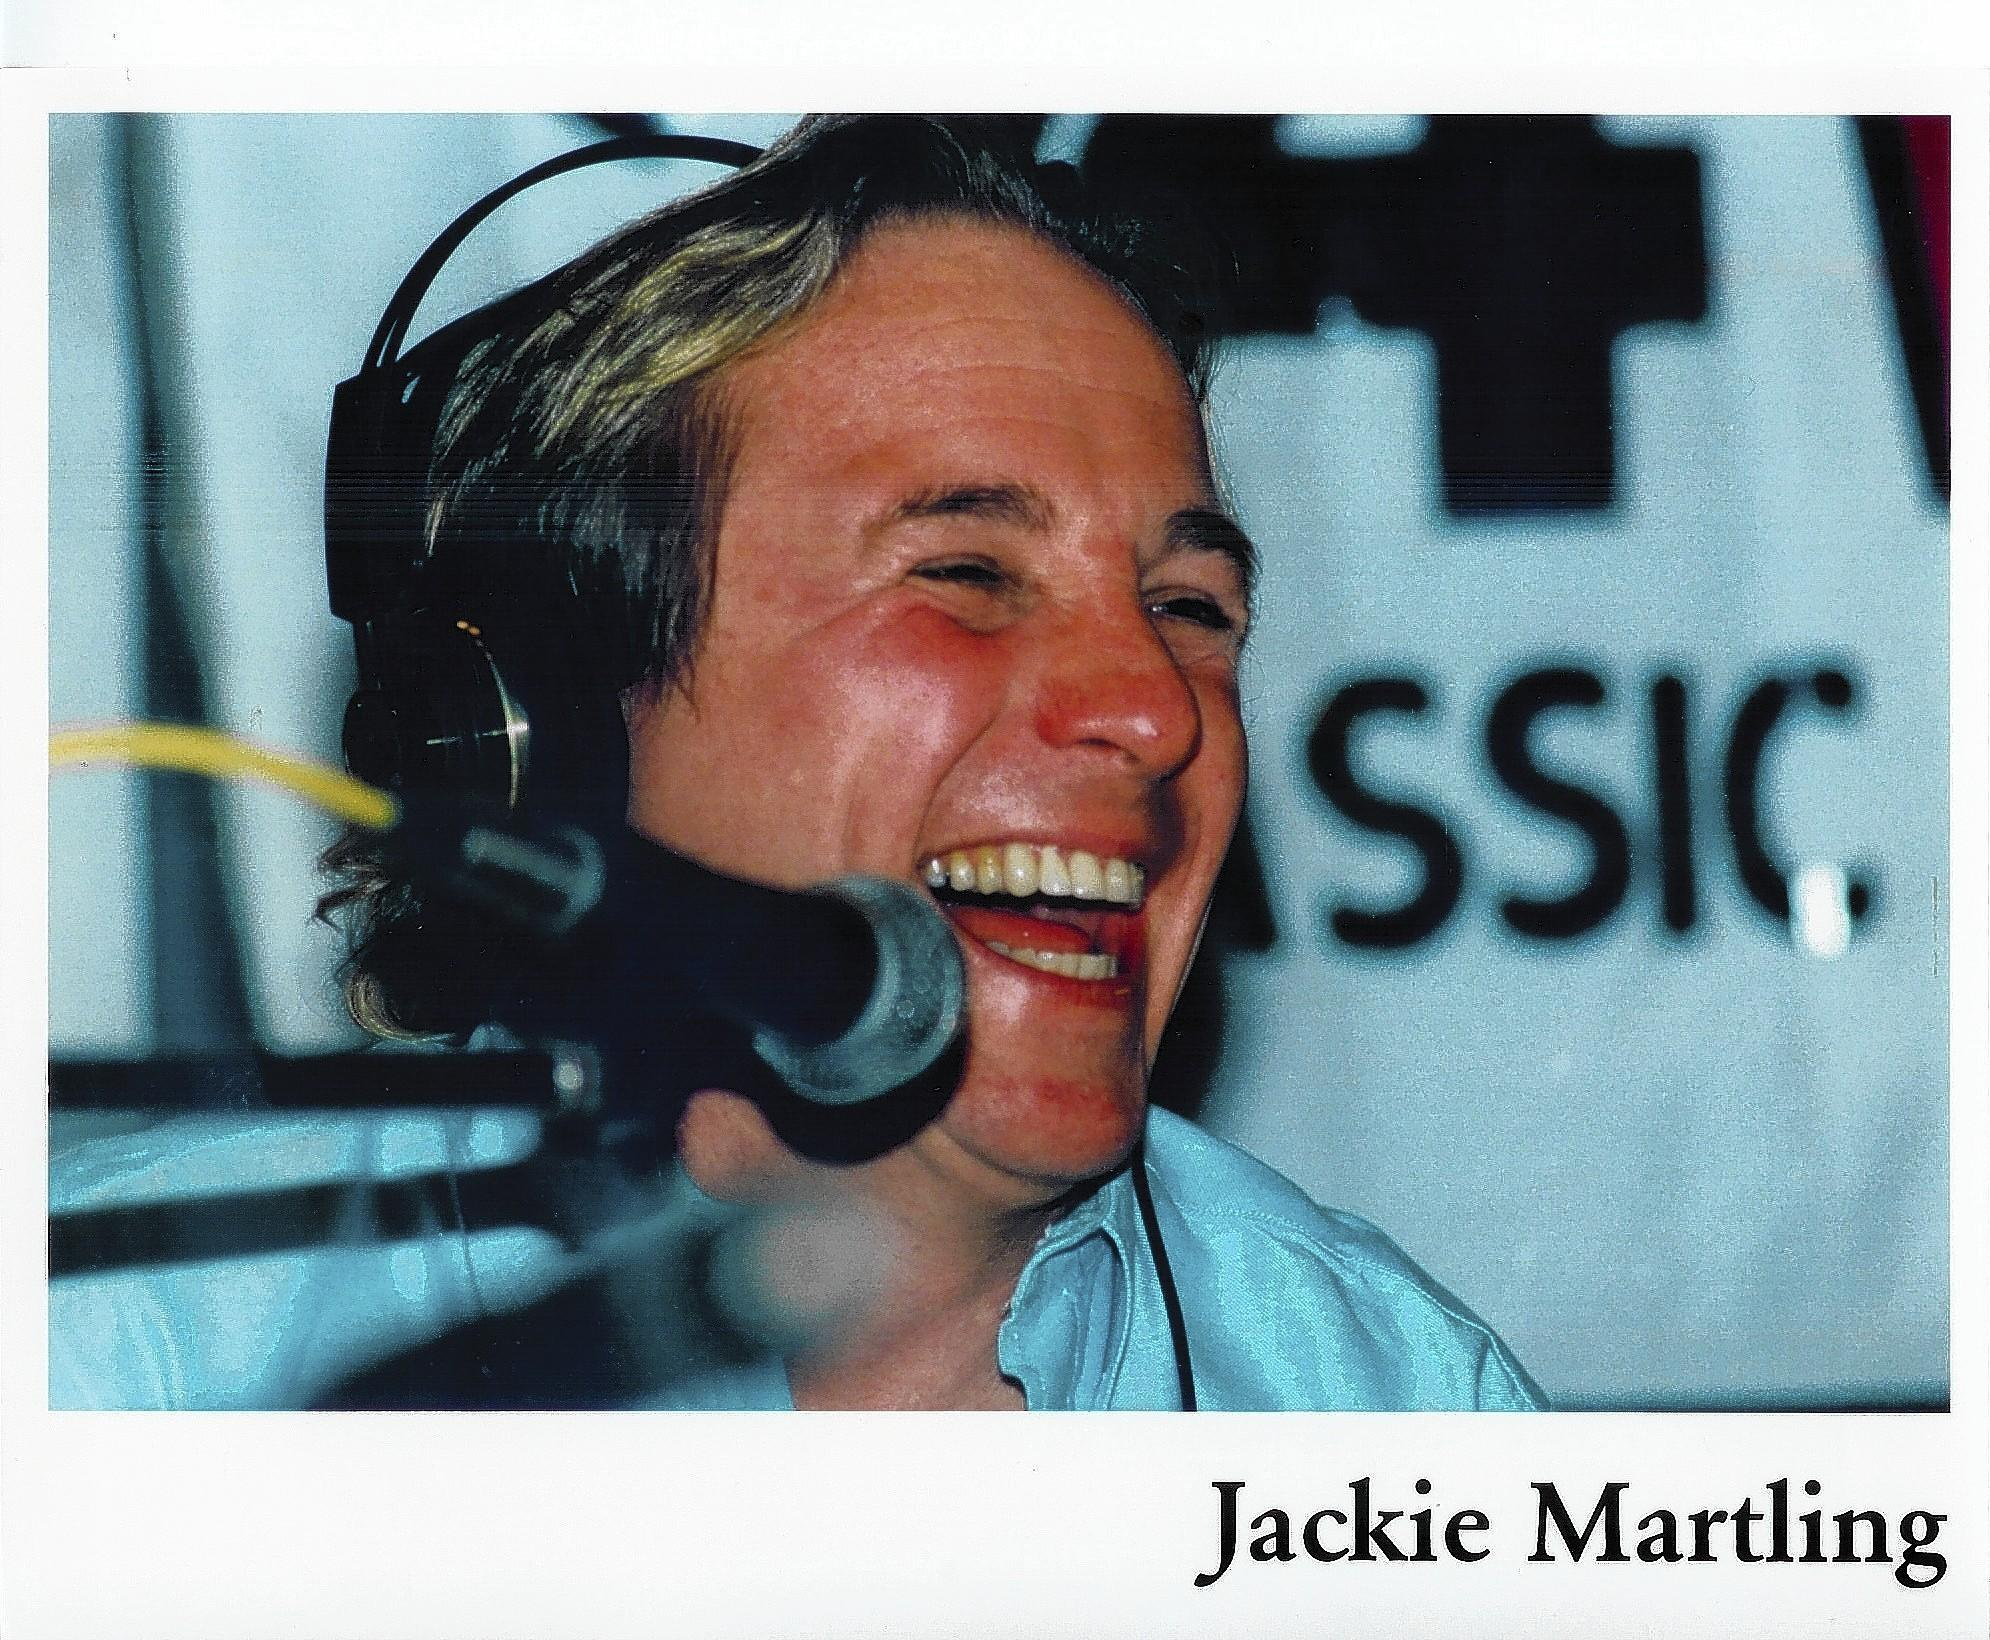 Jackie Martling his encyclopedic knowledge of jokes on radio and onstage at the Cabaret Theatre at Mohegan Sun on Saturday, Jan. 11, at 9 p.m.